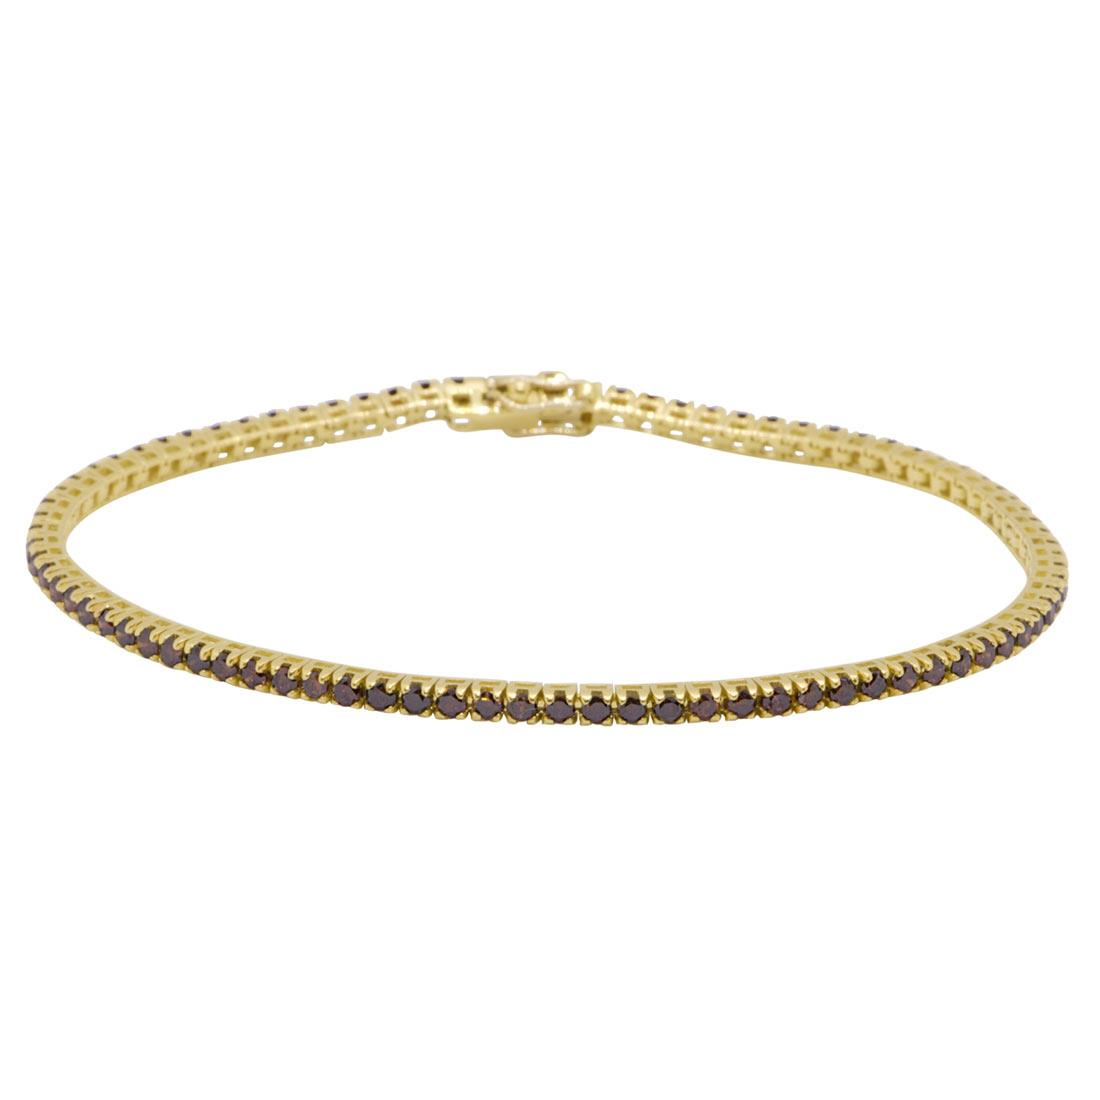 Bracciale tennis in oro giallo con diamanti 2,35 ct - ORO&CO